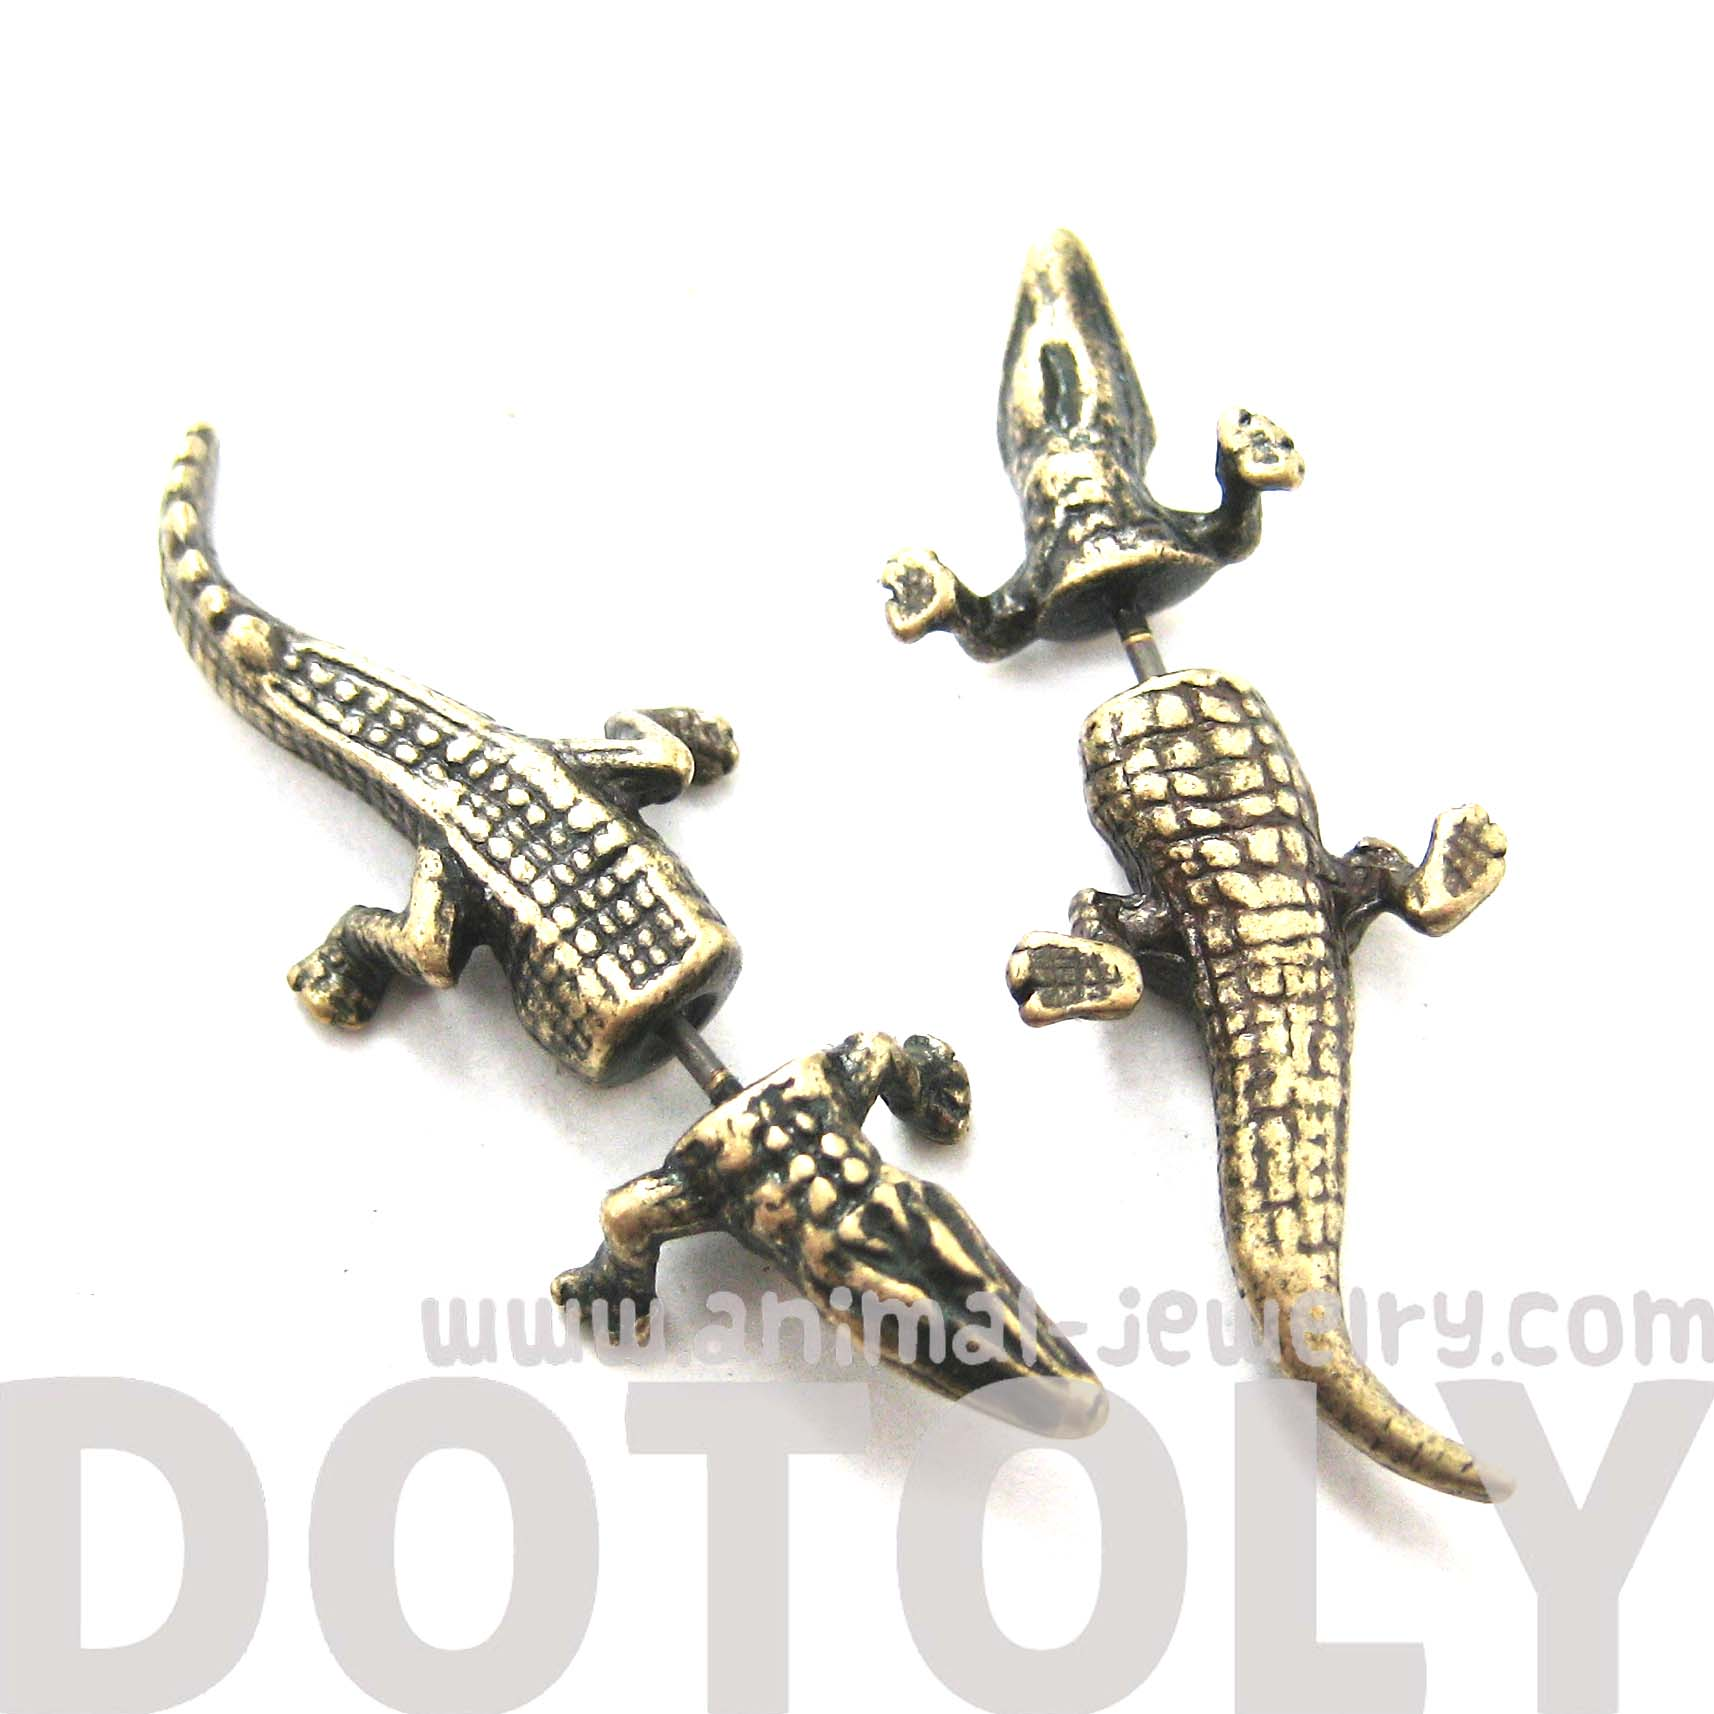 fake-gauge-earrings-alligator-crocodile-animal-shaped-stud-plug-earrings-in-brass